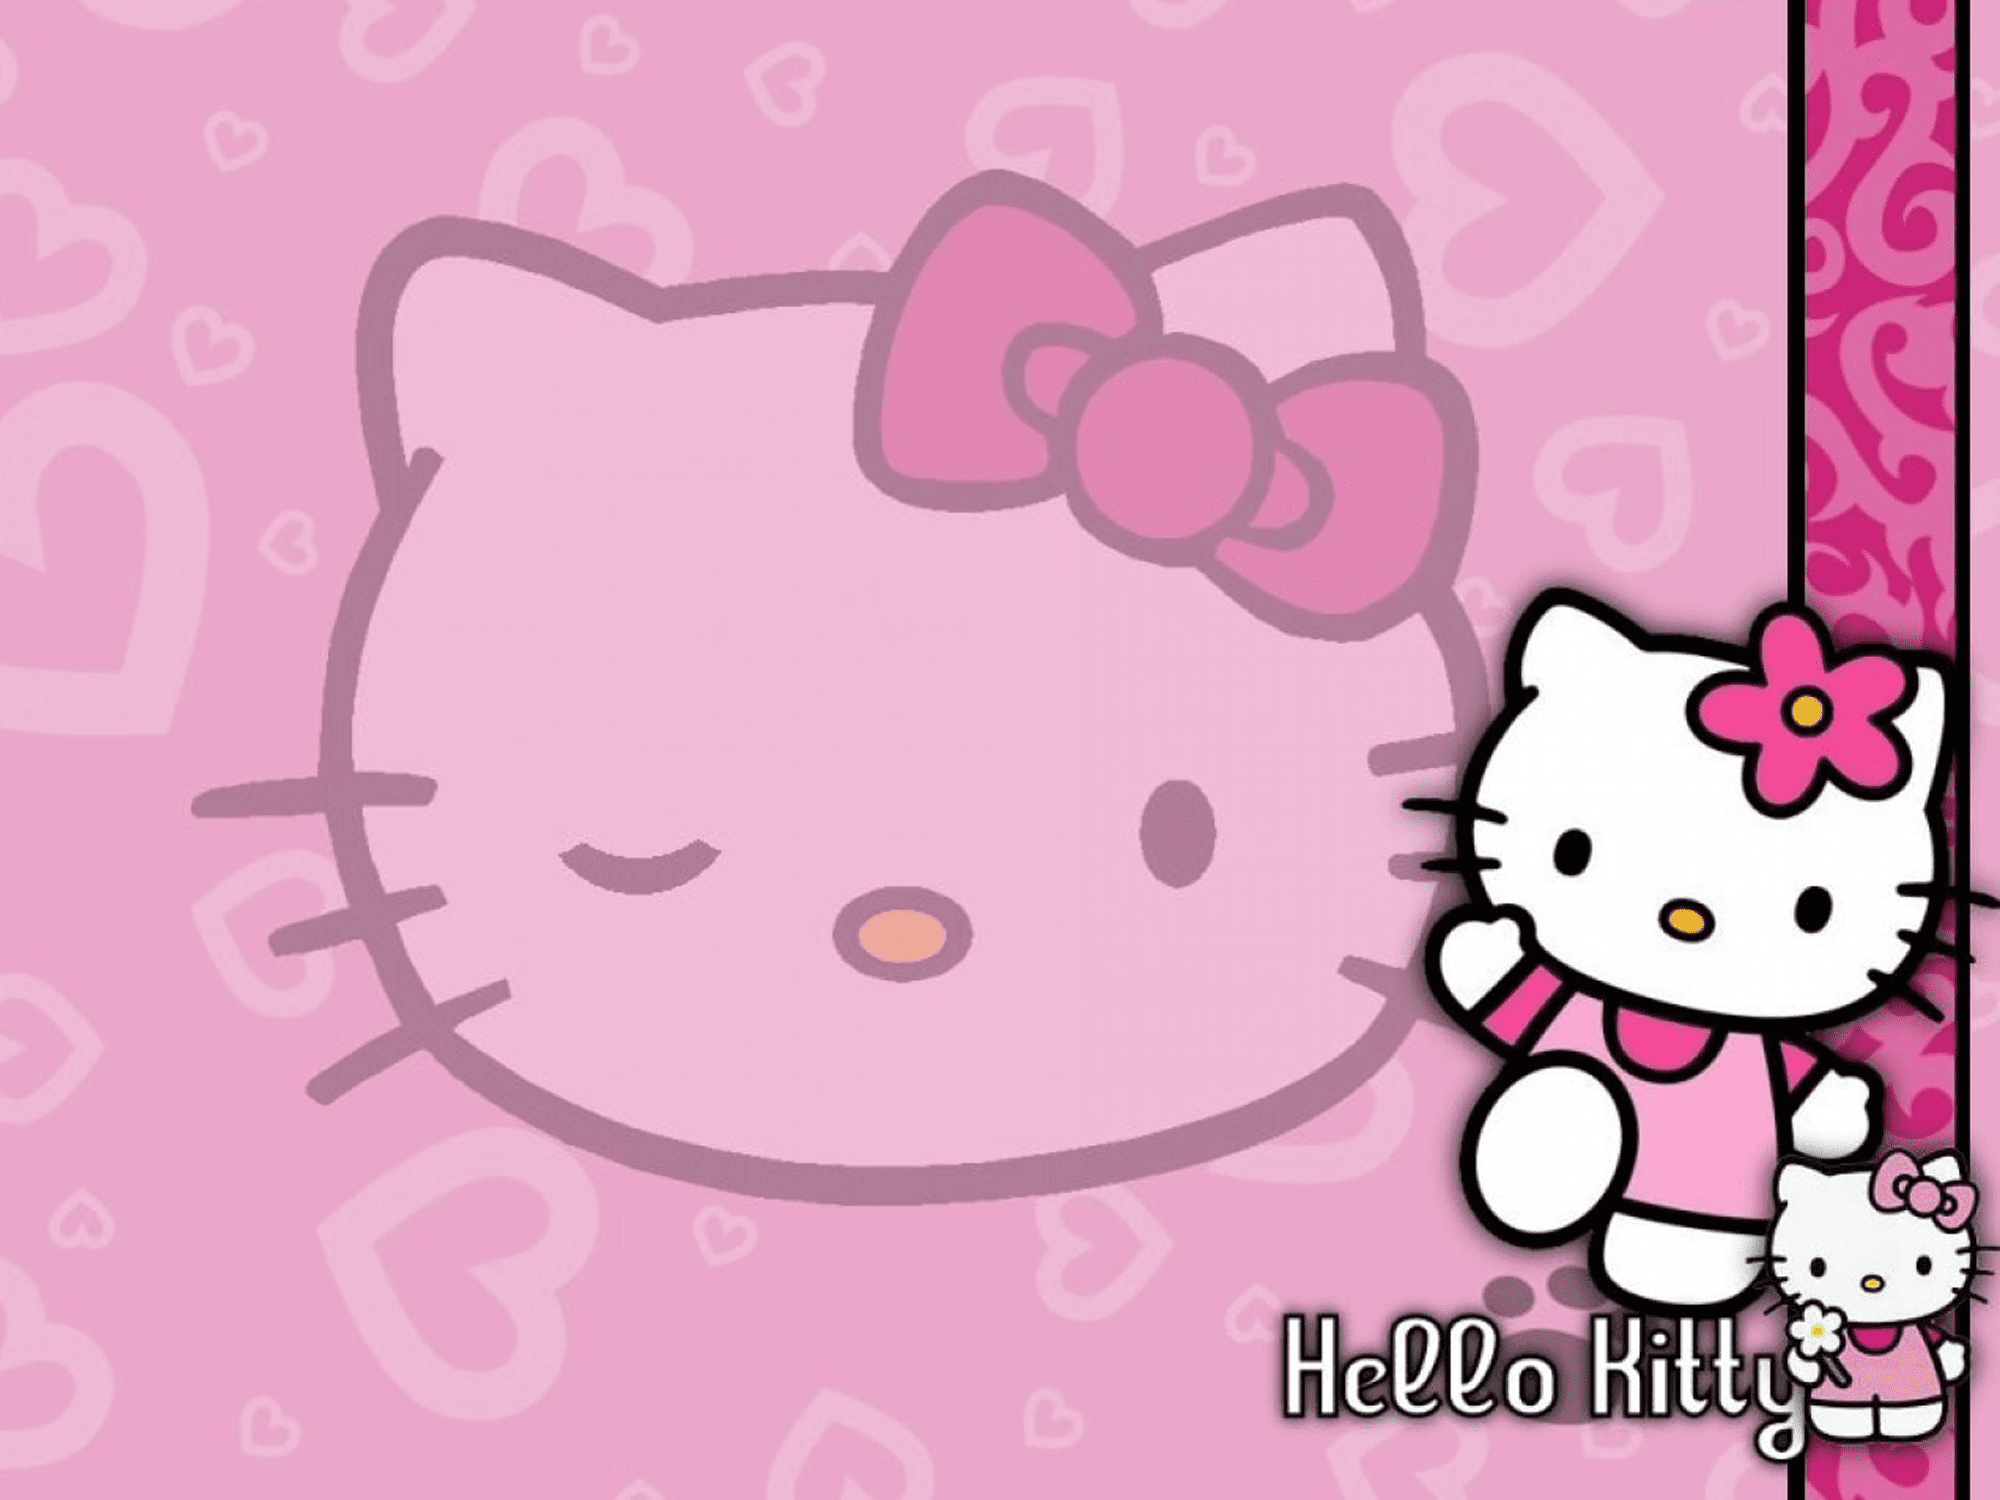 The Top Hello Kitty Wallpapers 2000x1500